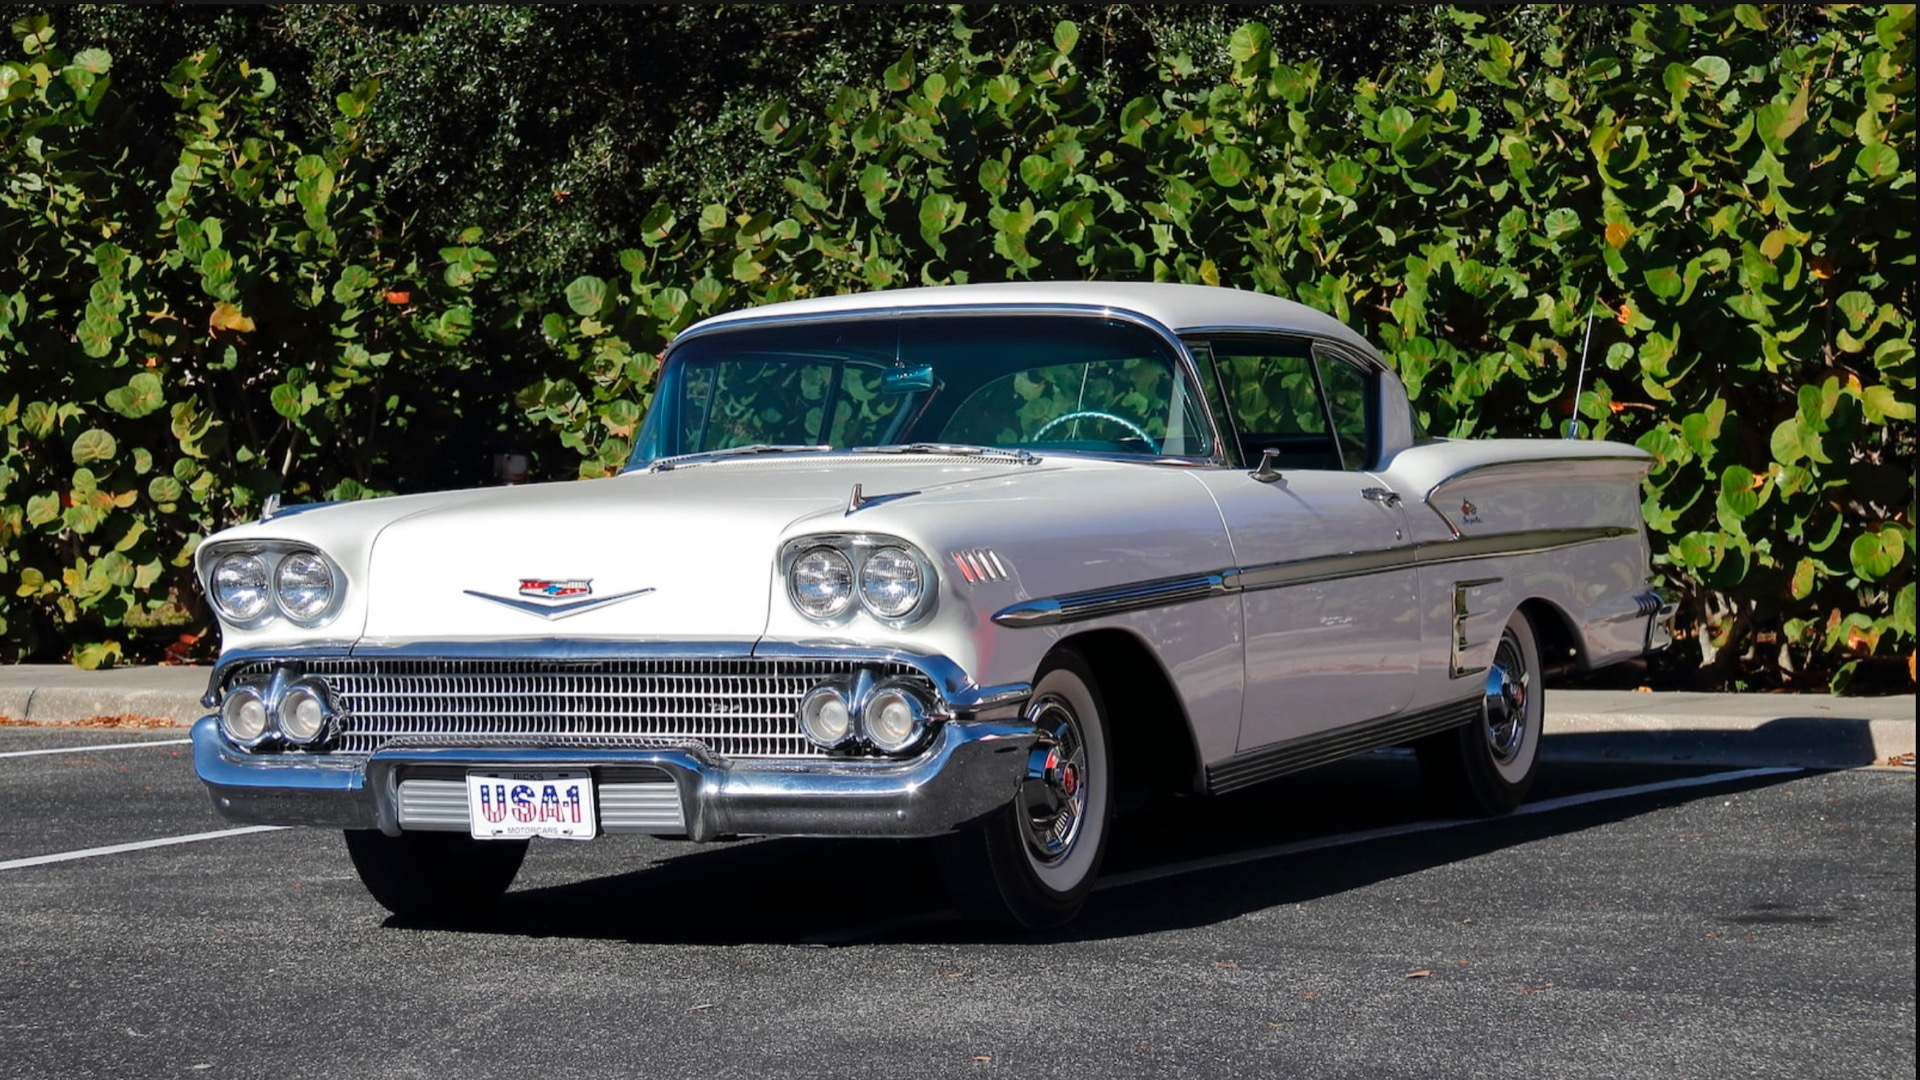 1958 Chevrolet Impala from Rick Treworgy collection (Photo by Mecum Auctions)